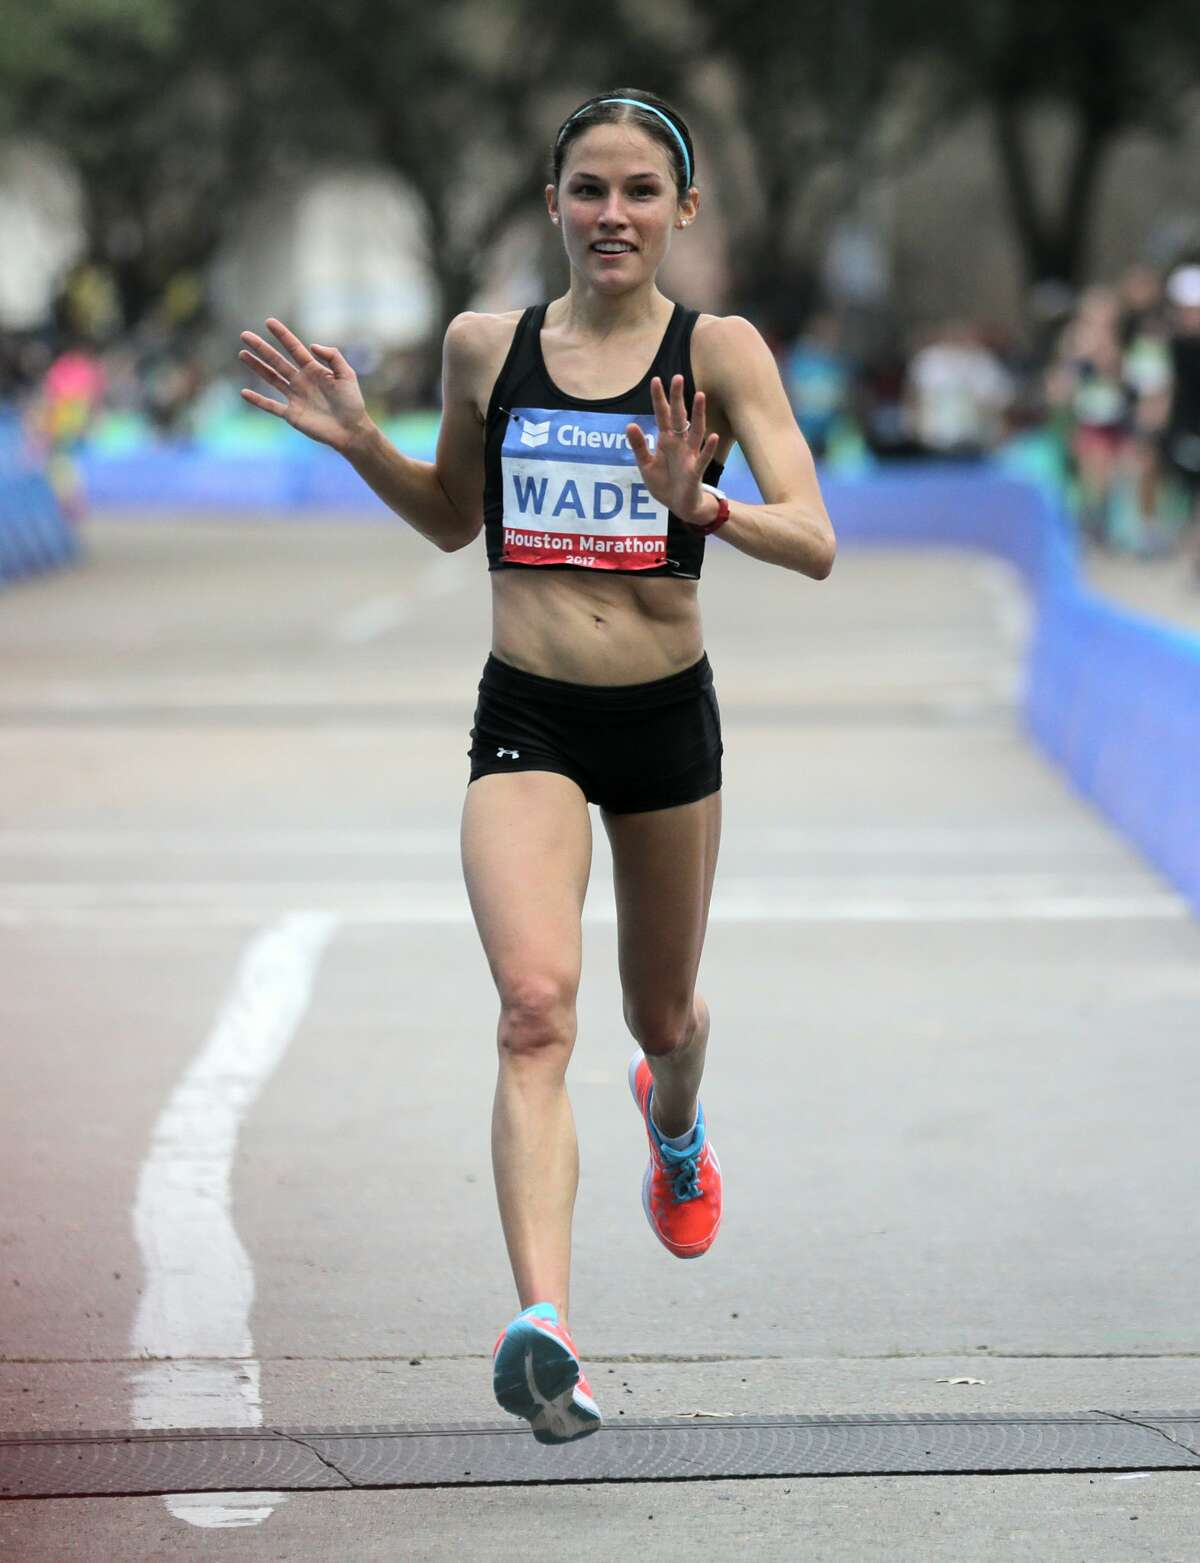 Becky Wade of the USA waves as she crosses the finish line after coming third in the Chevron Houston Marathon on Sunday, Jan. 15, 2017, in Houston. ( Elizabeth Conley / Houston Chronicle )